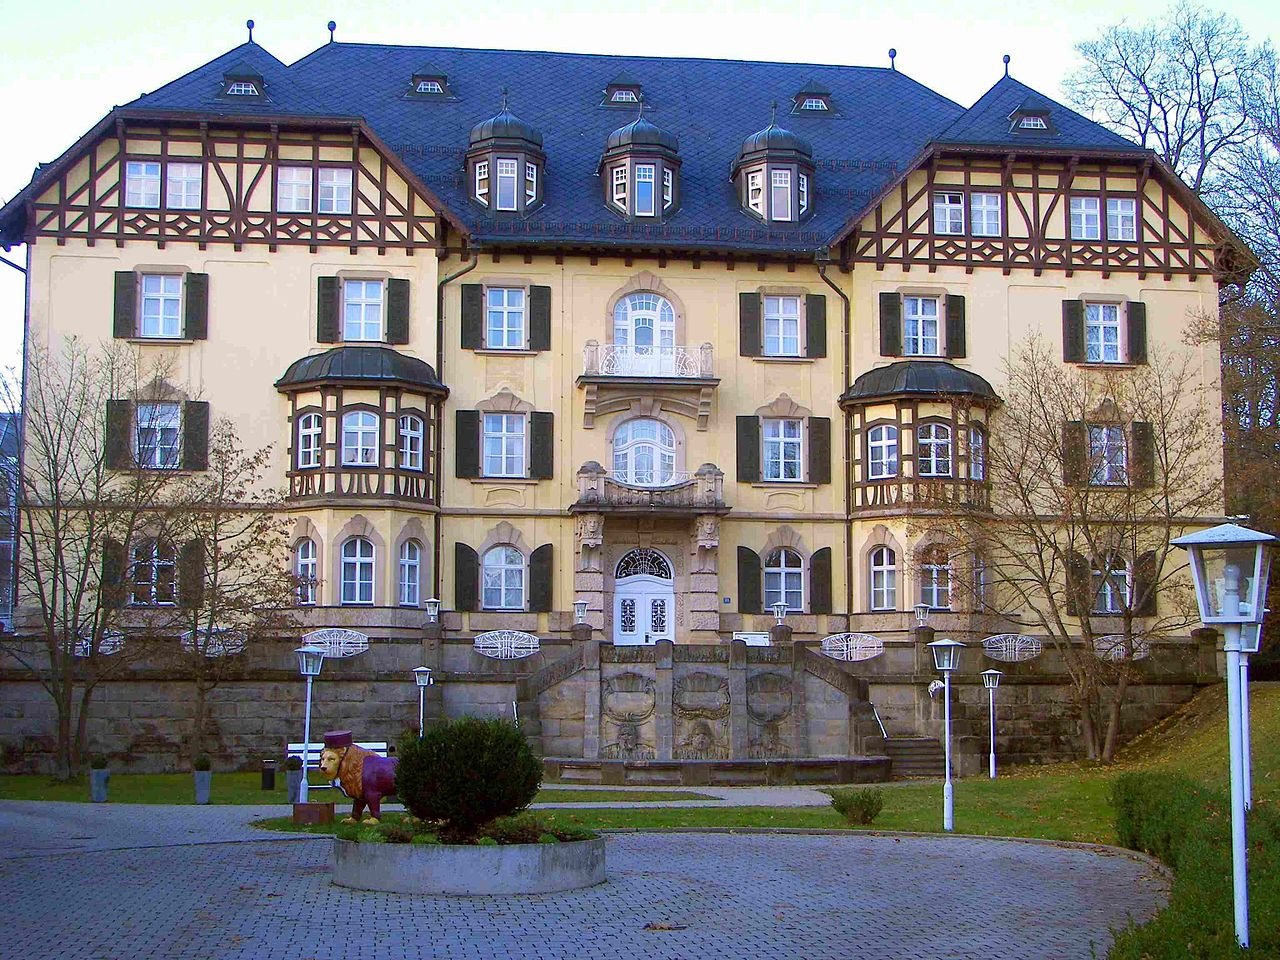 Hotel Bad Steben